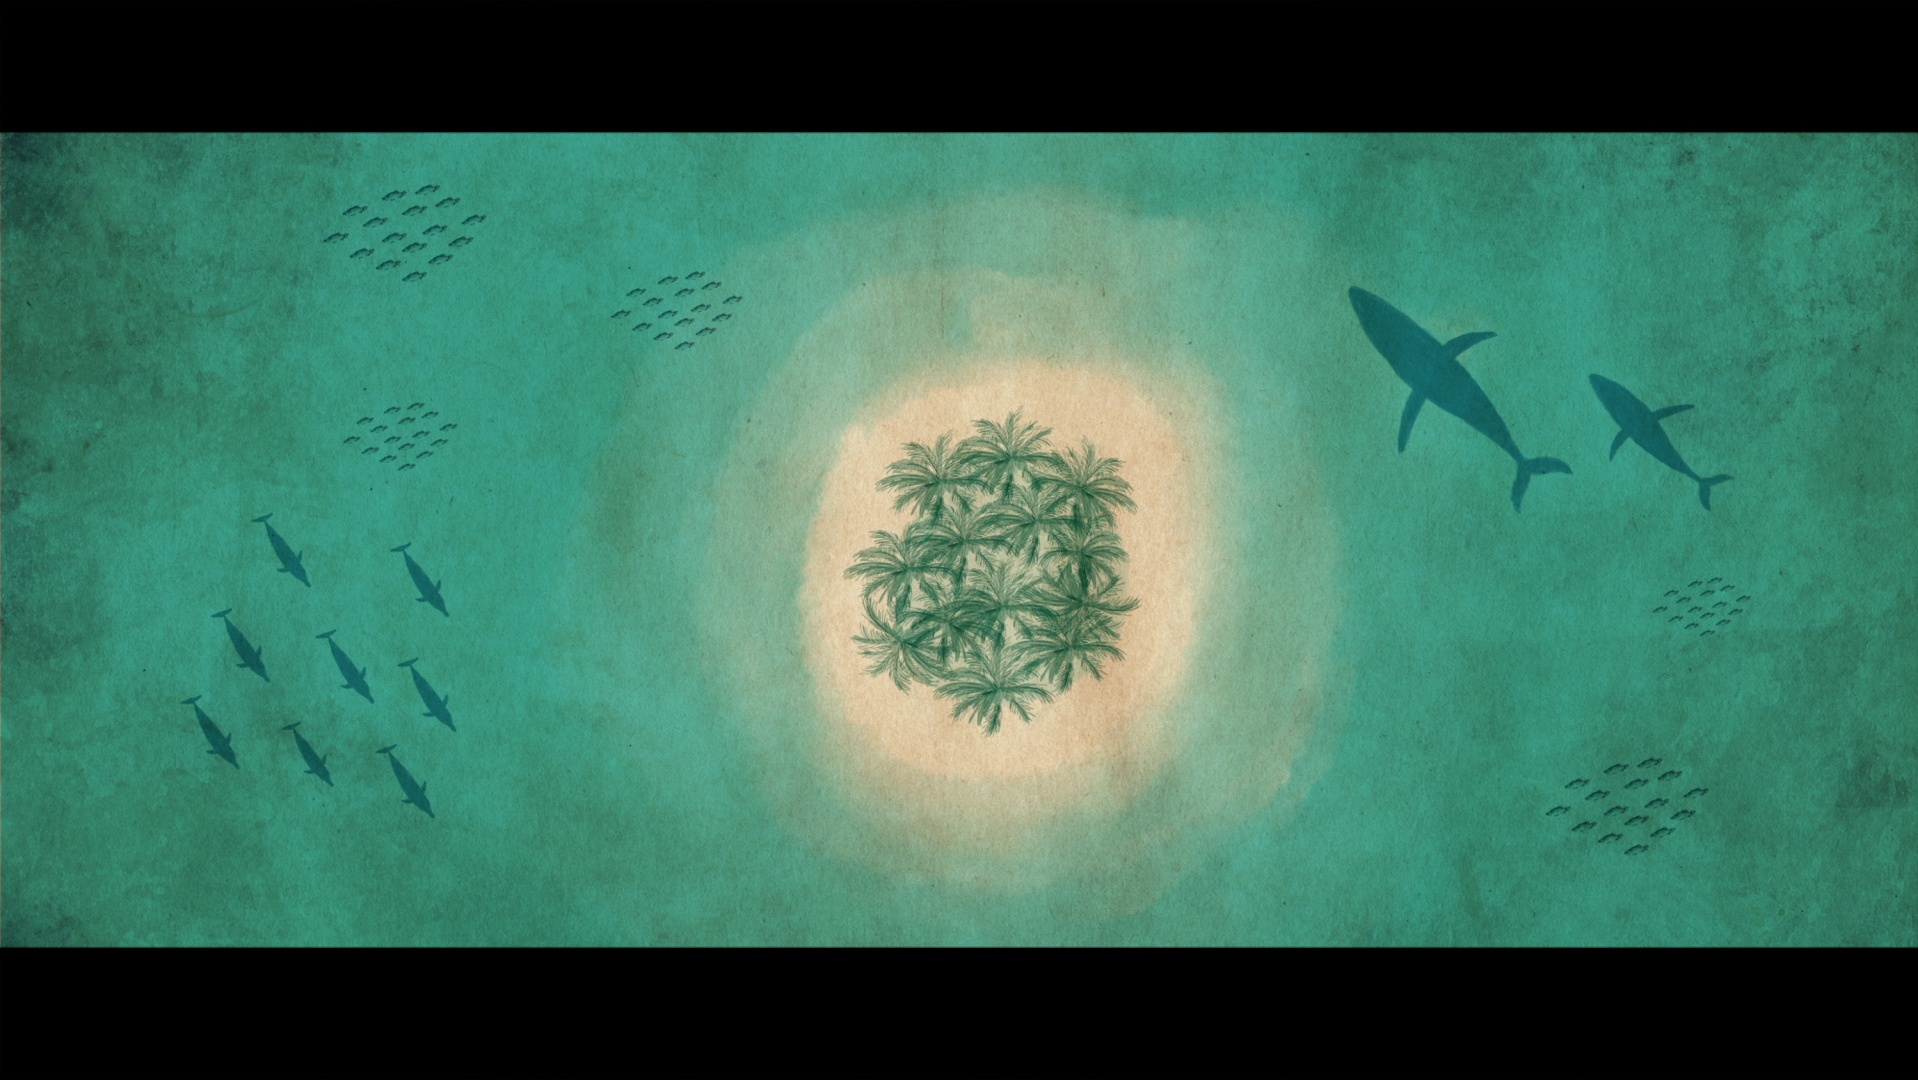 Hand painted artwork by illustrator/animator Anna Outridge for The Map to Paradise (film).